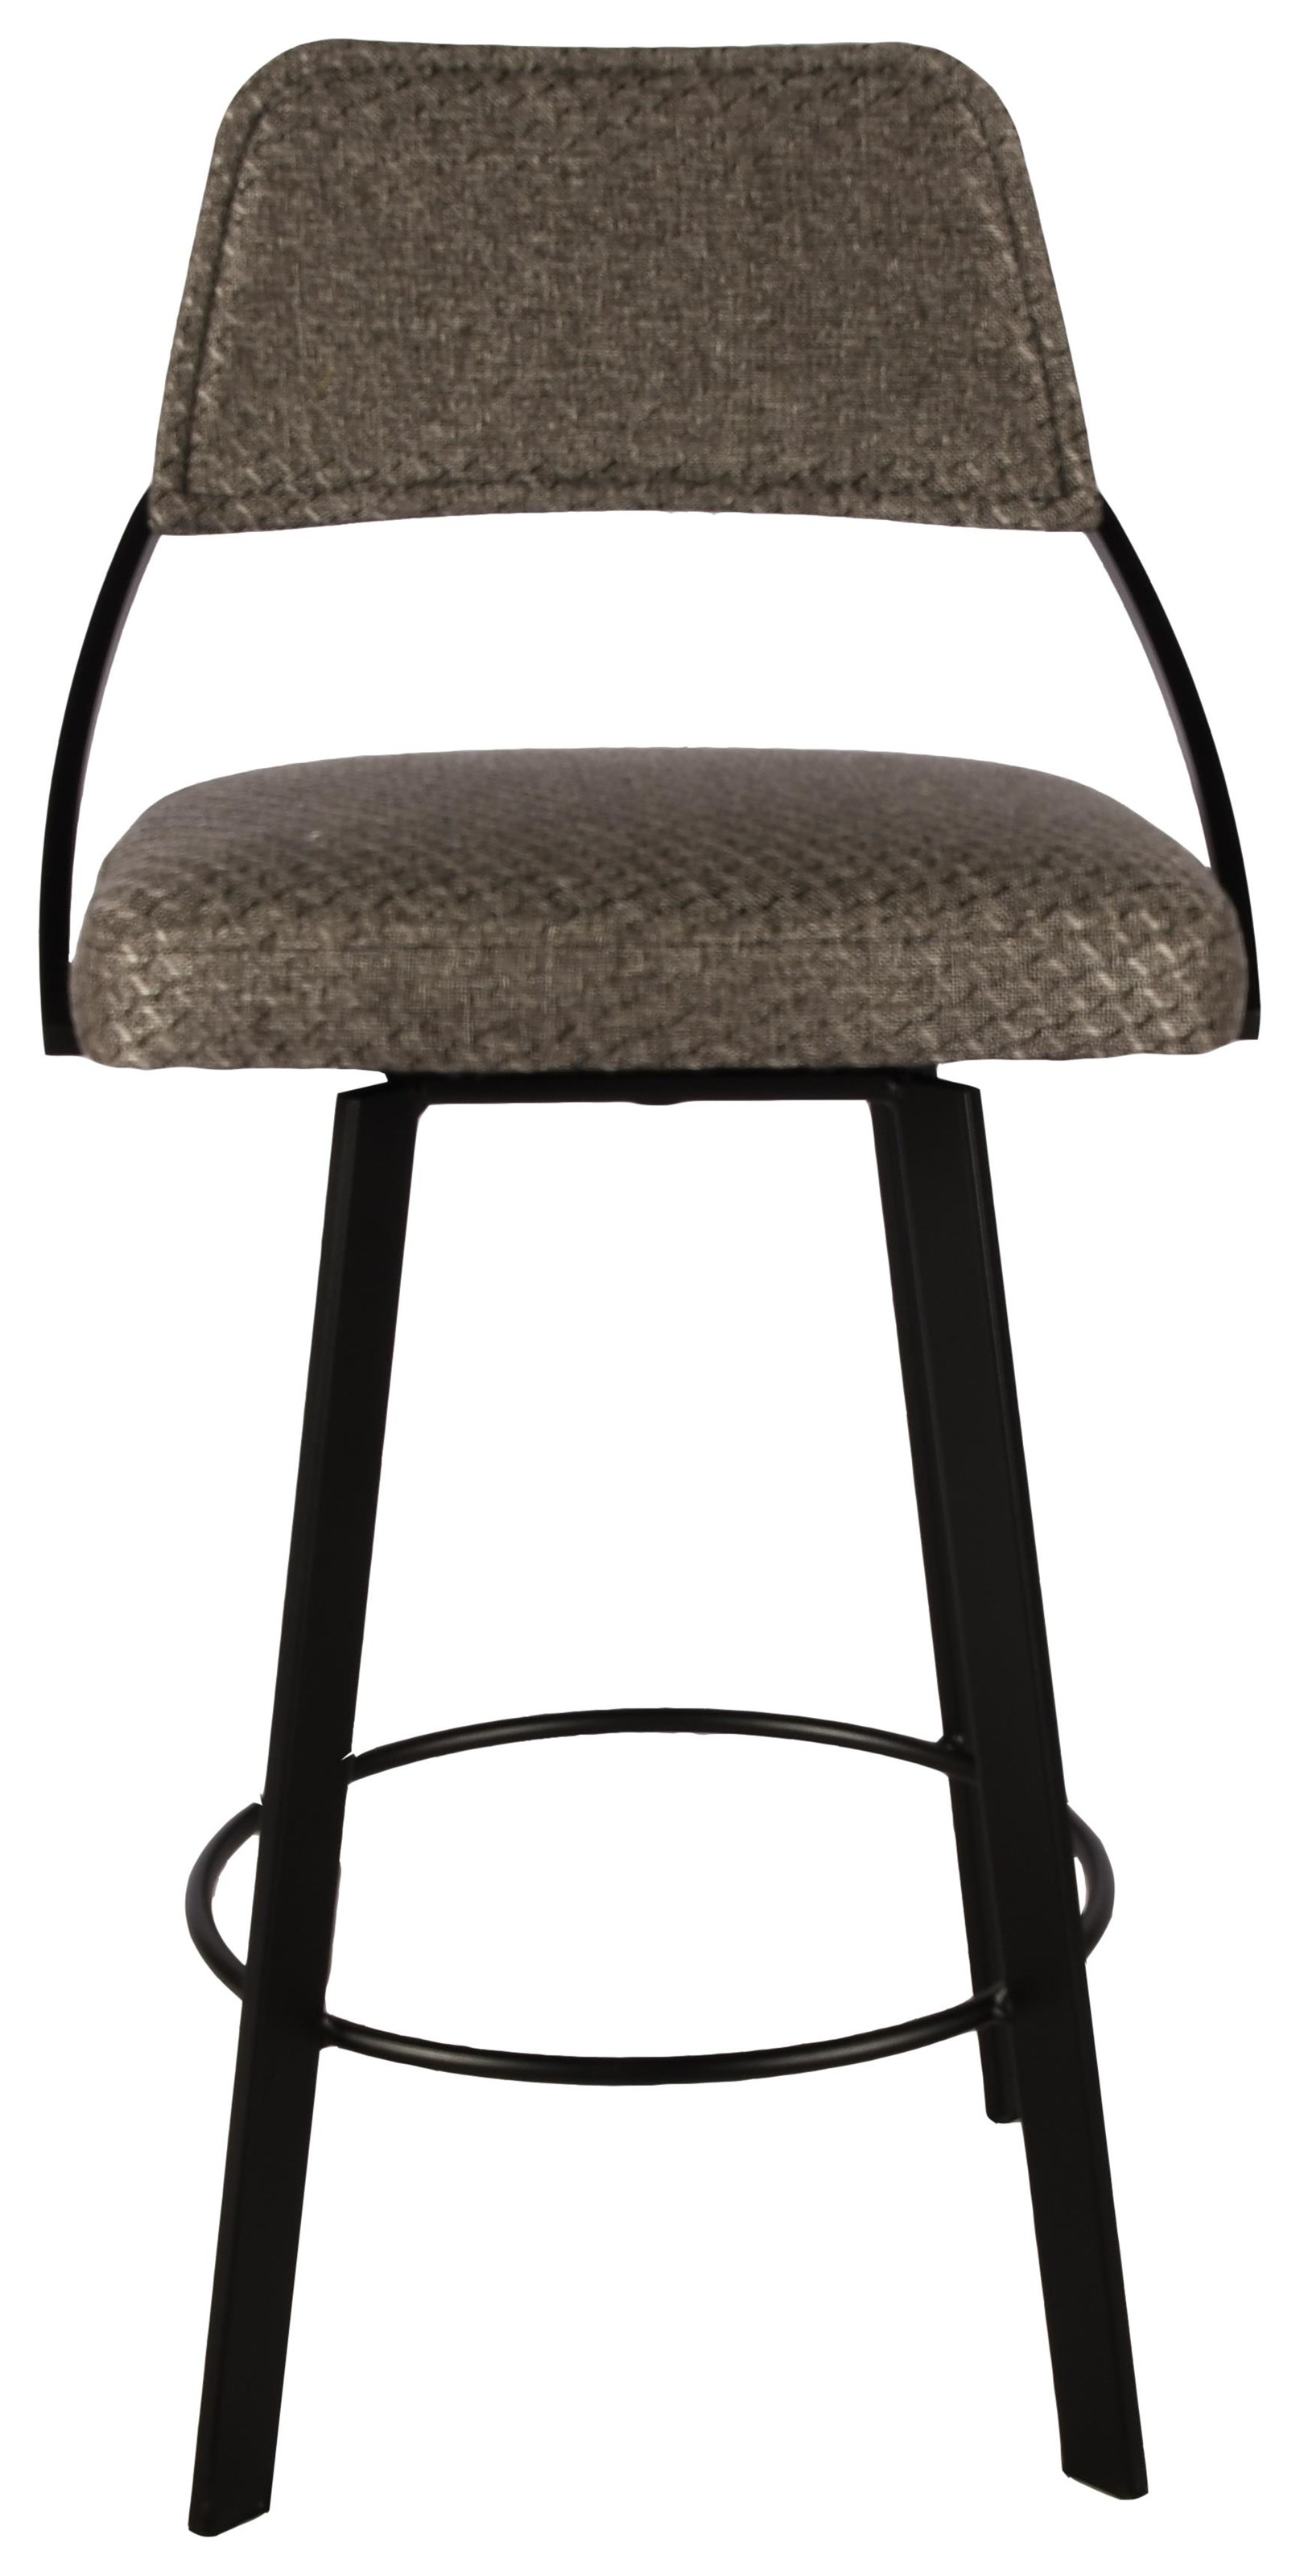 Wish Stool at Bennett's Furniture and Mattresses